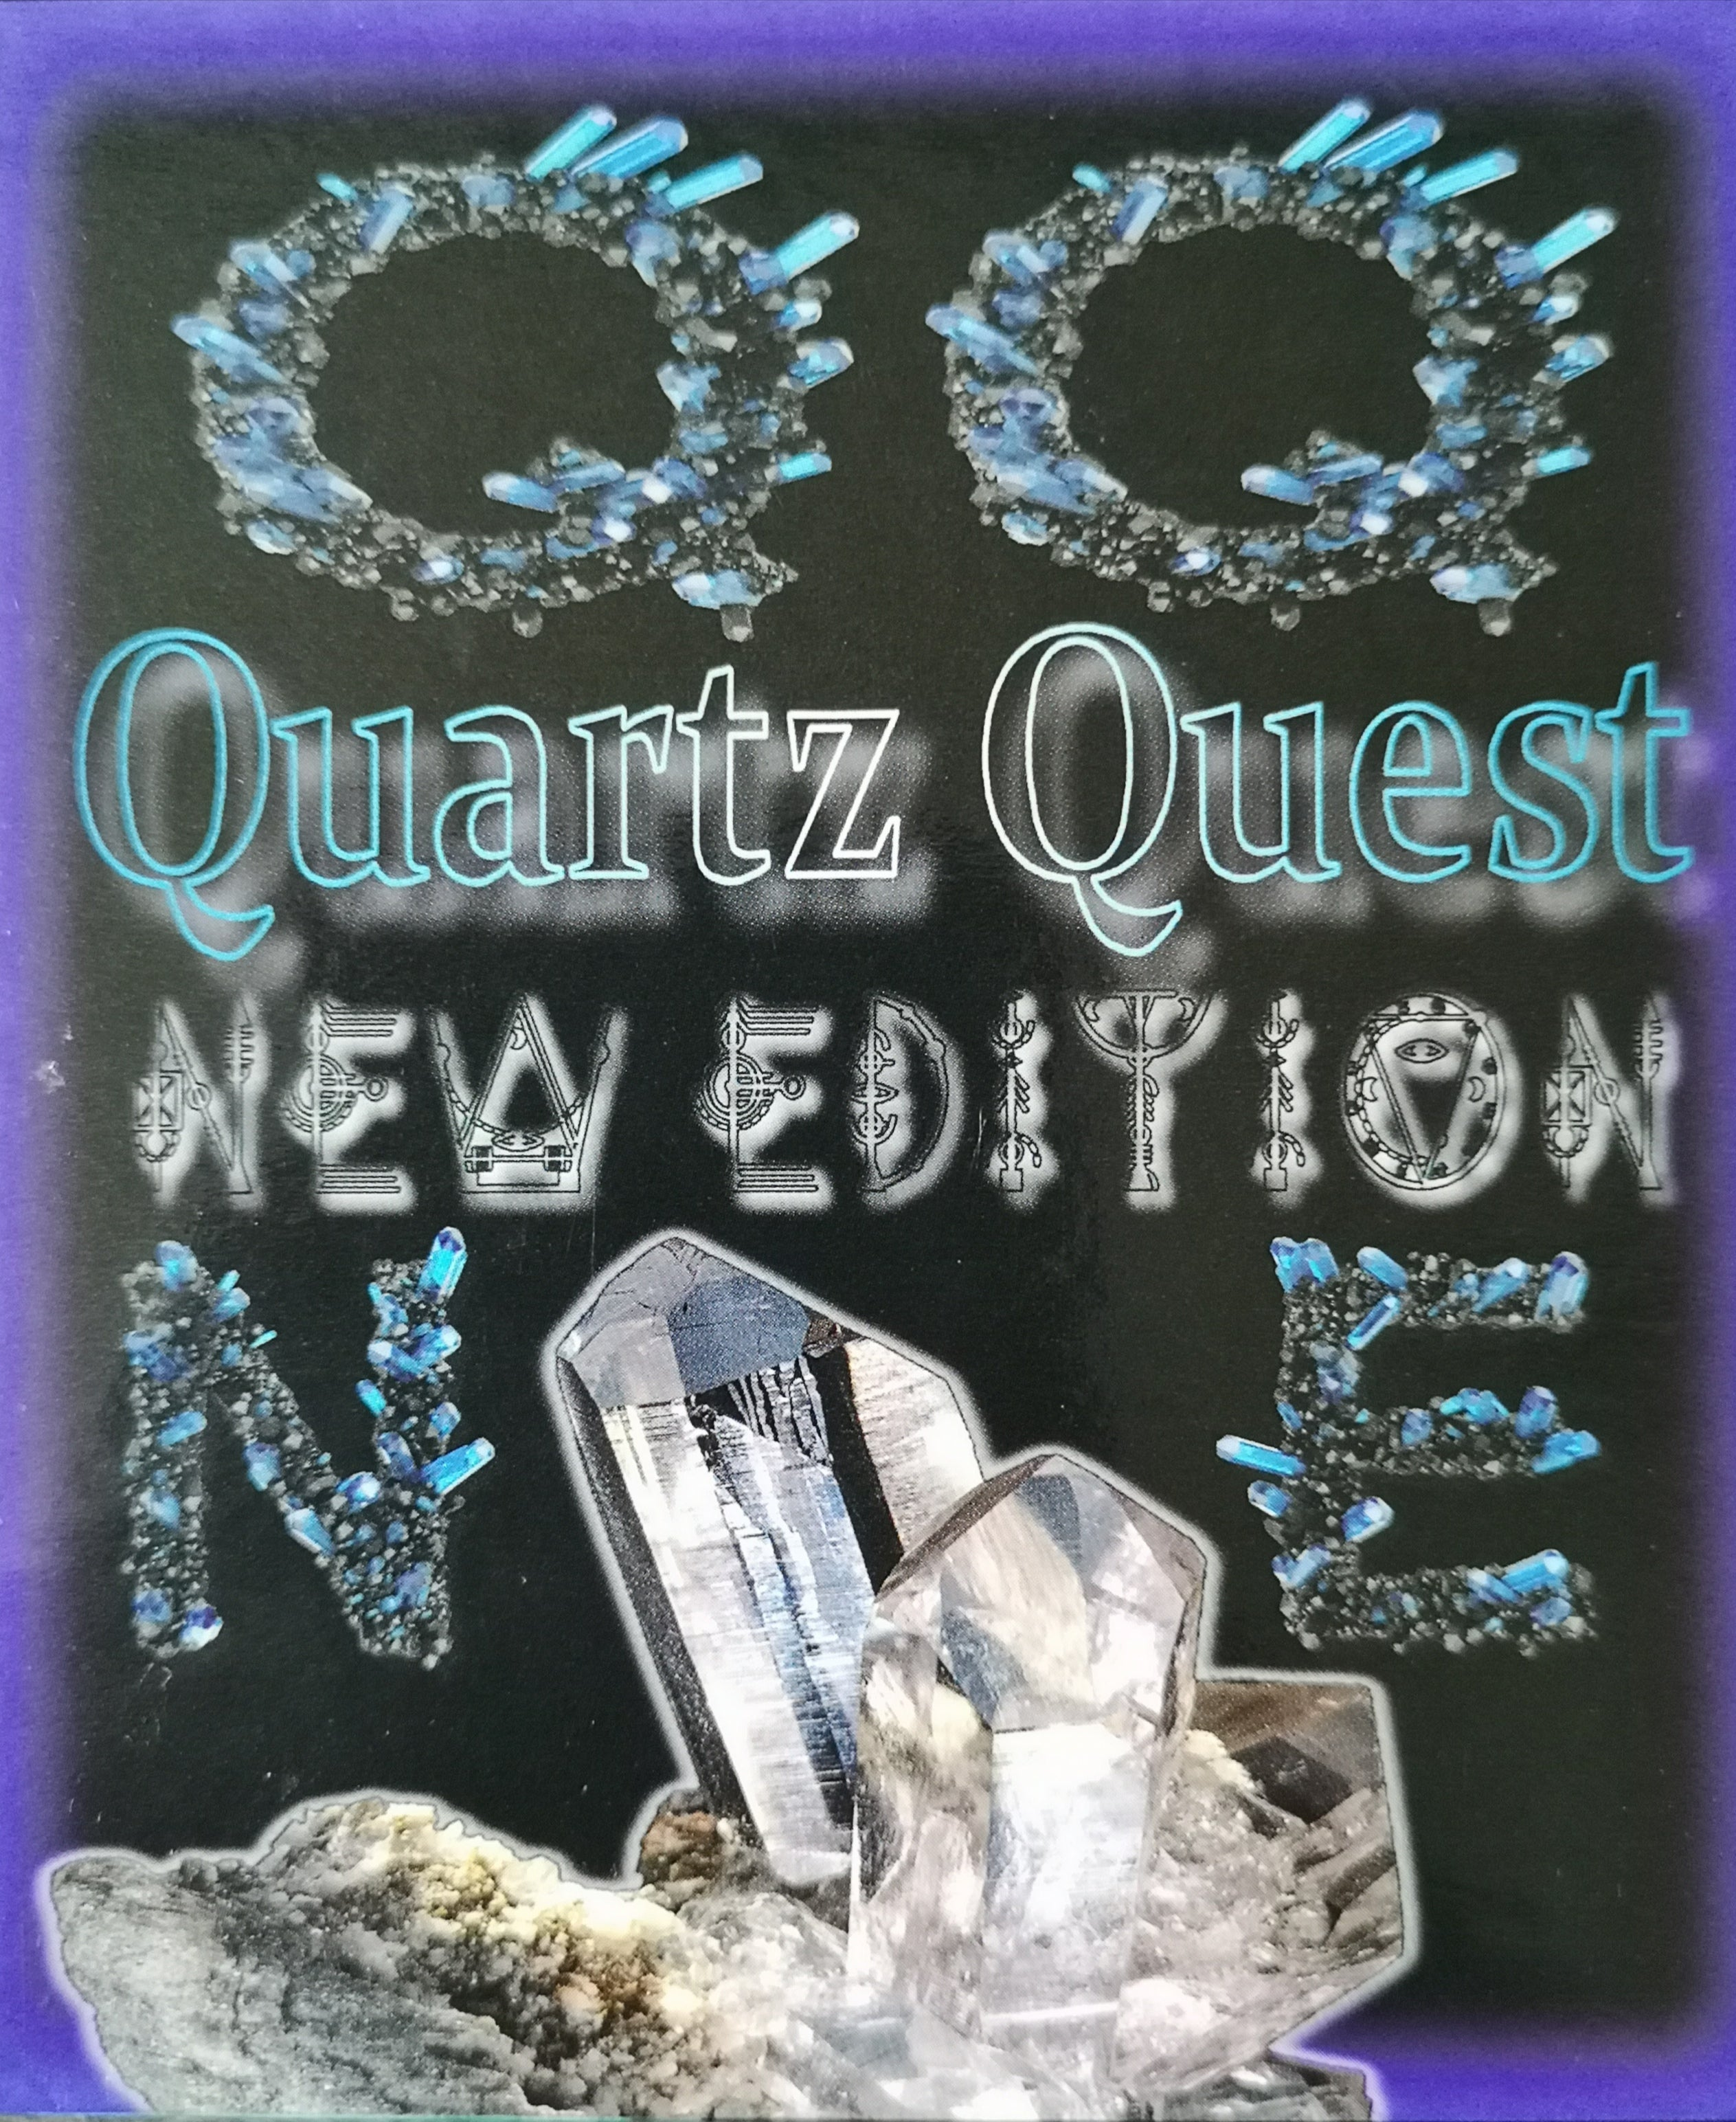 Quartz Quest New Edition... we just like this box XD